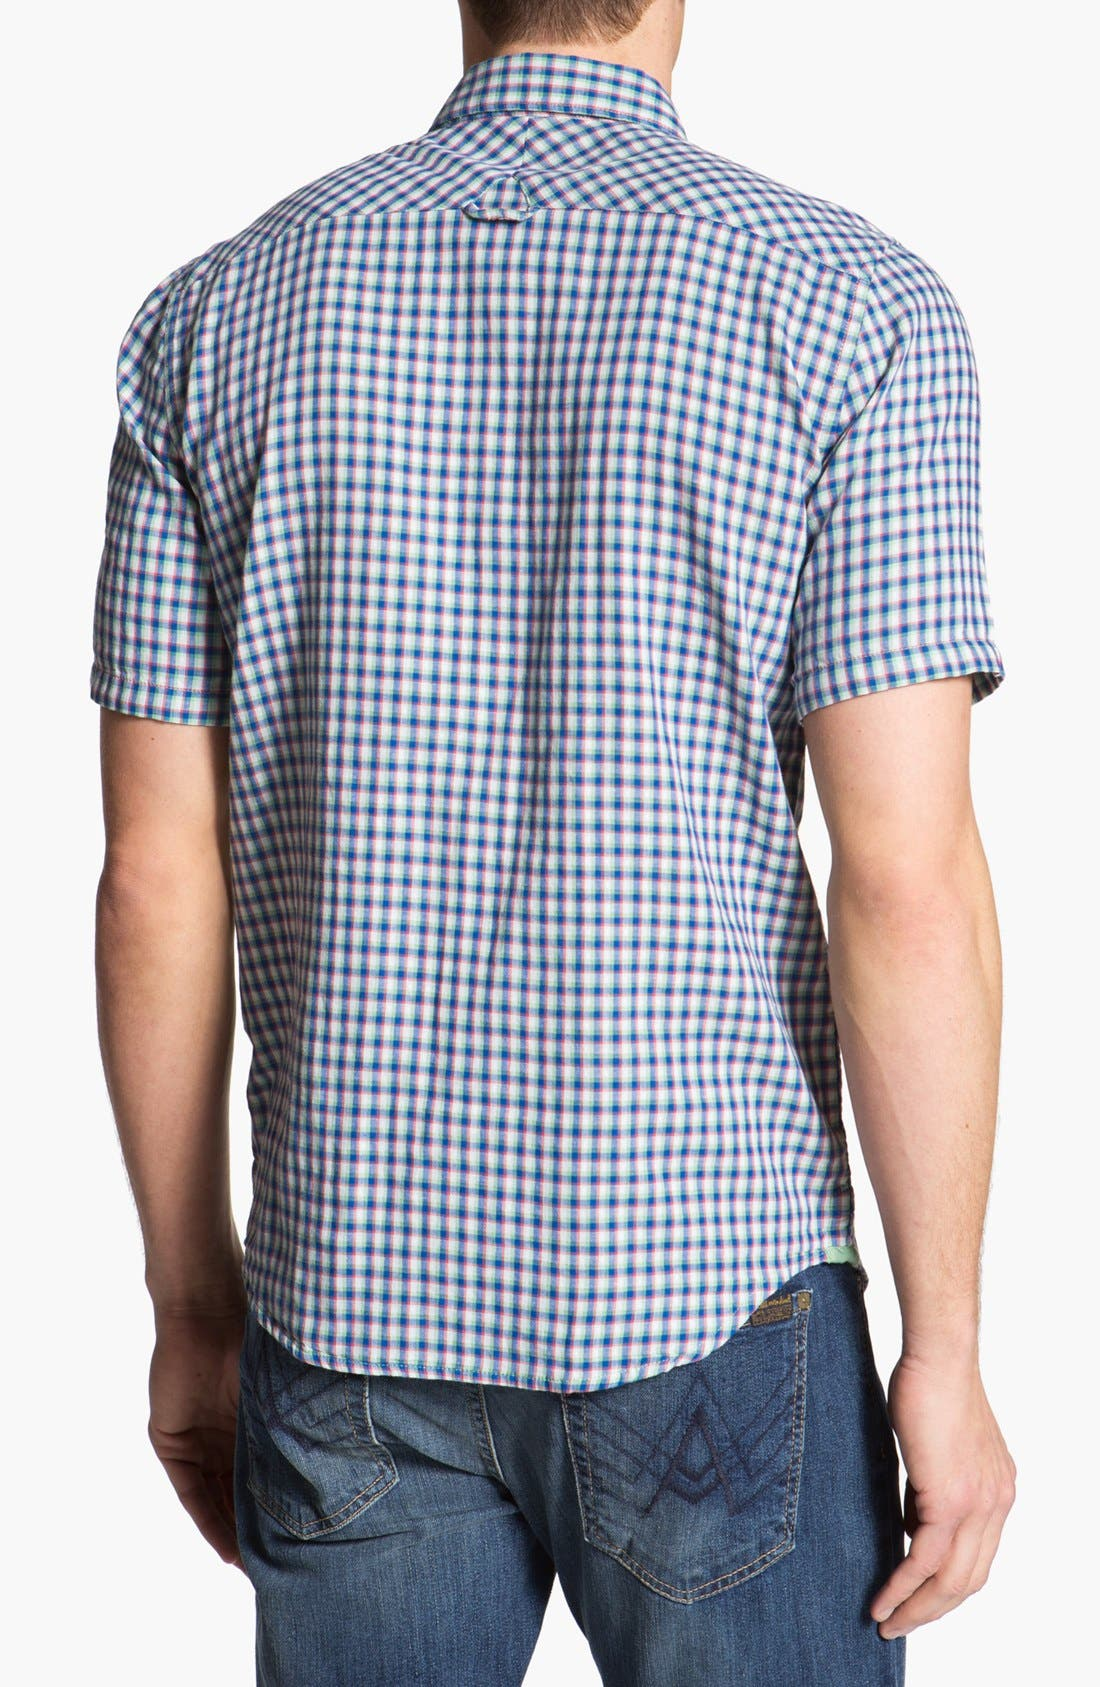 Alternate Image 3  - Volcom 'Lanford' Short Sleeve Check Woven Shirt